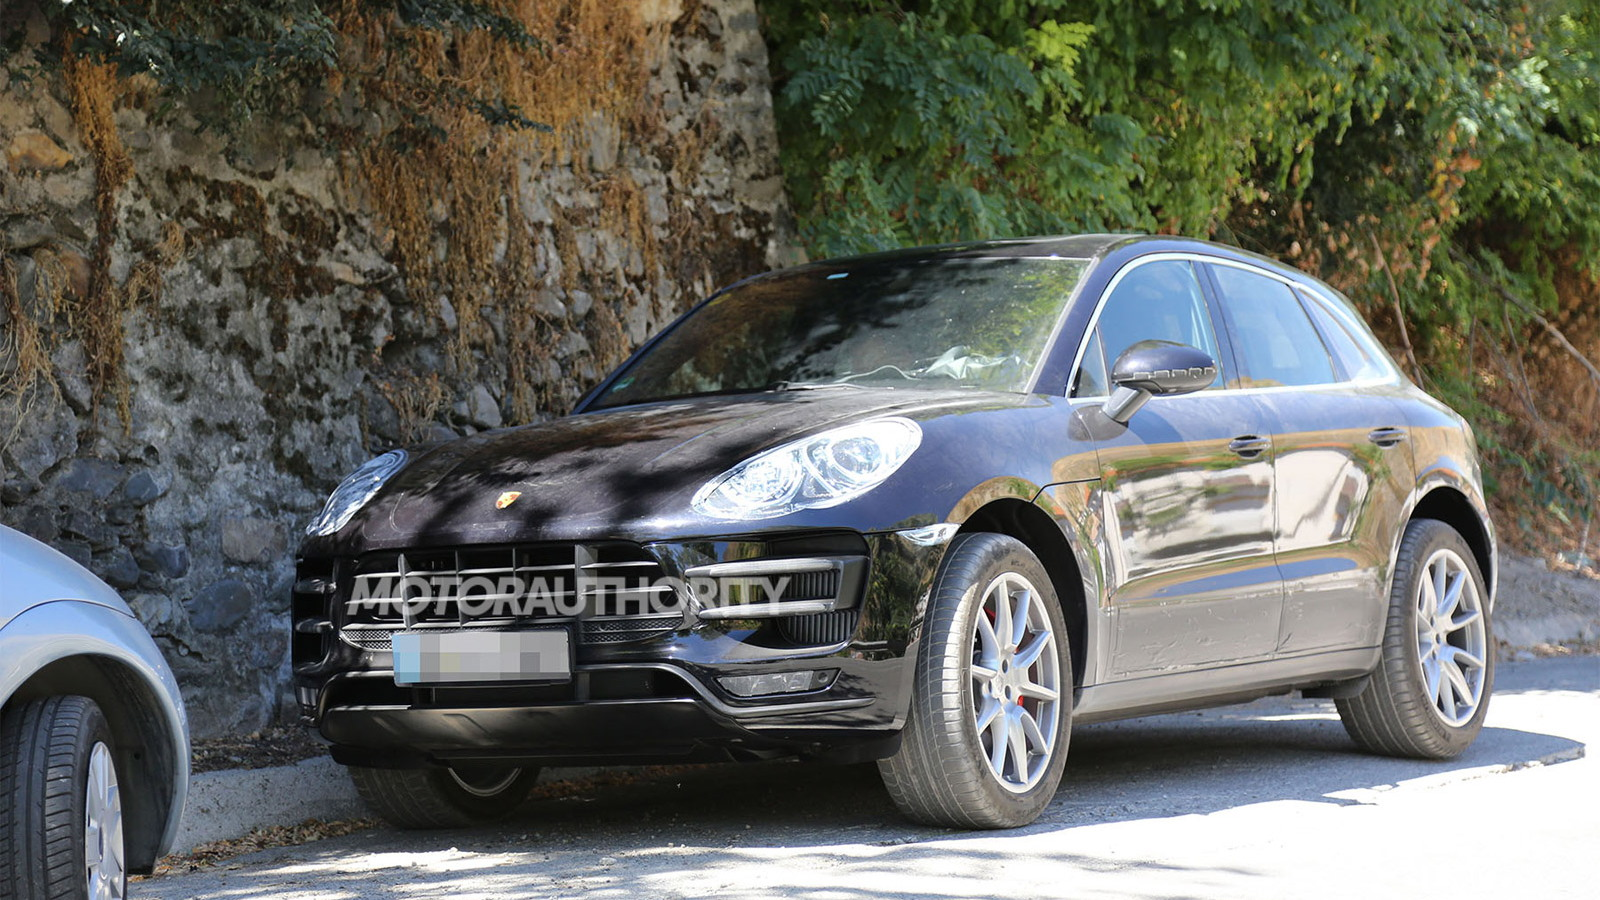 2015 Porsche Macan Turbo spy shots